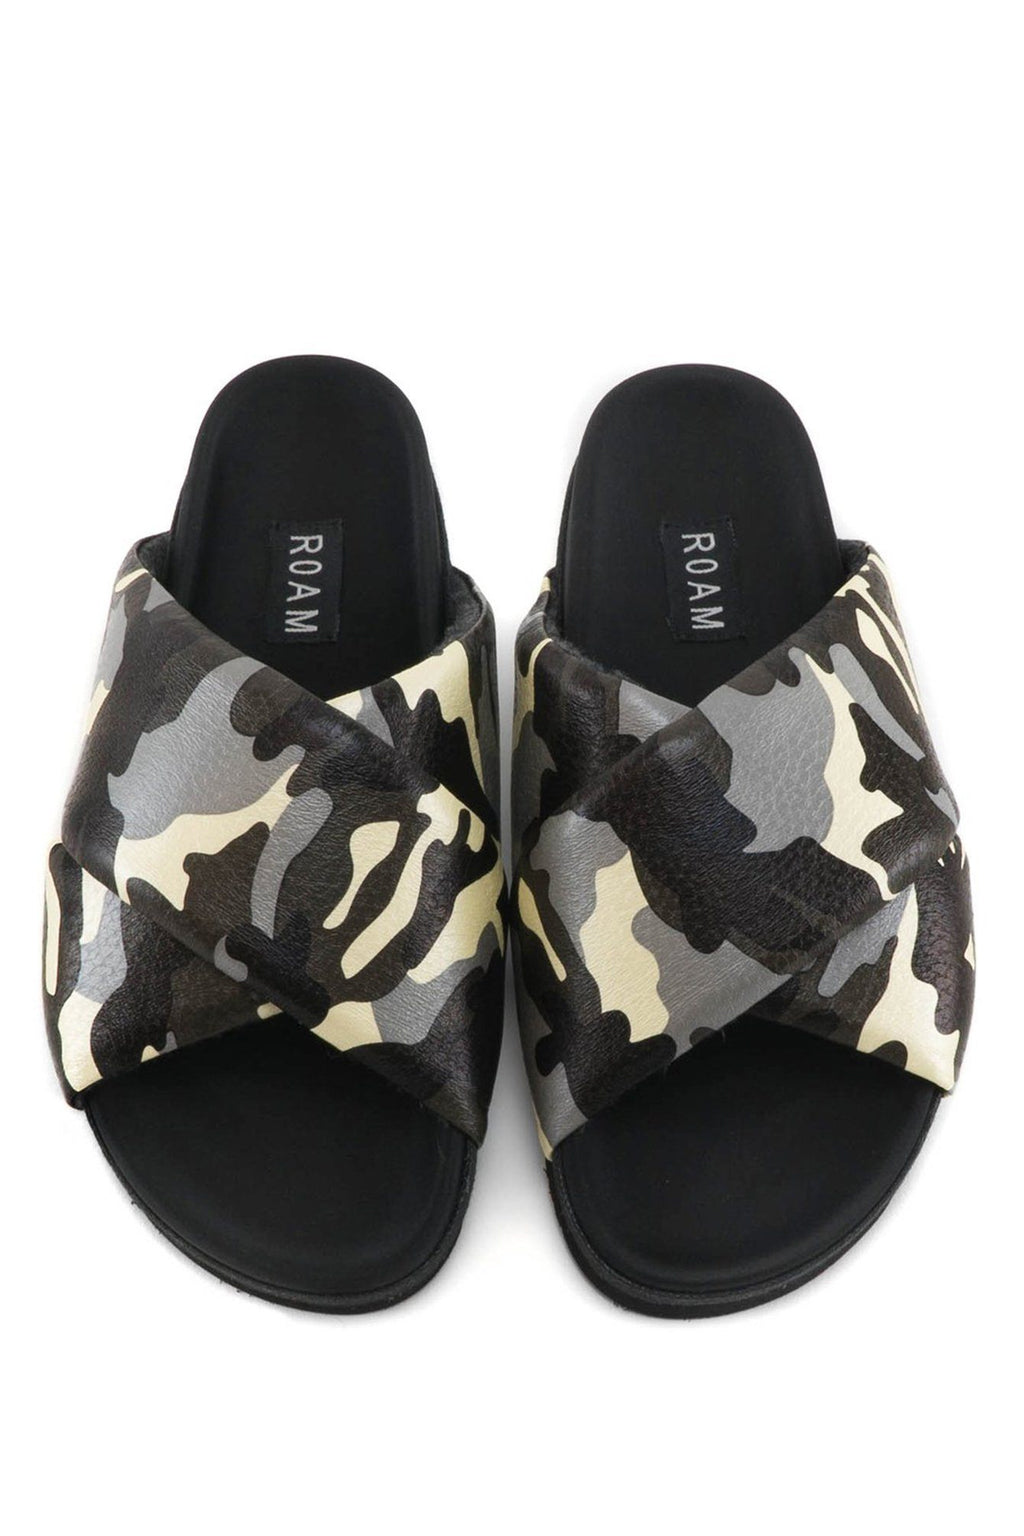 ROAM | Grey Camo Cross Slide